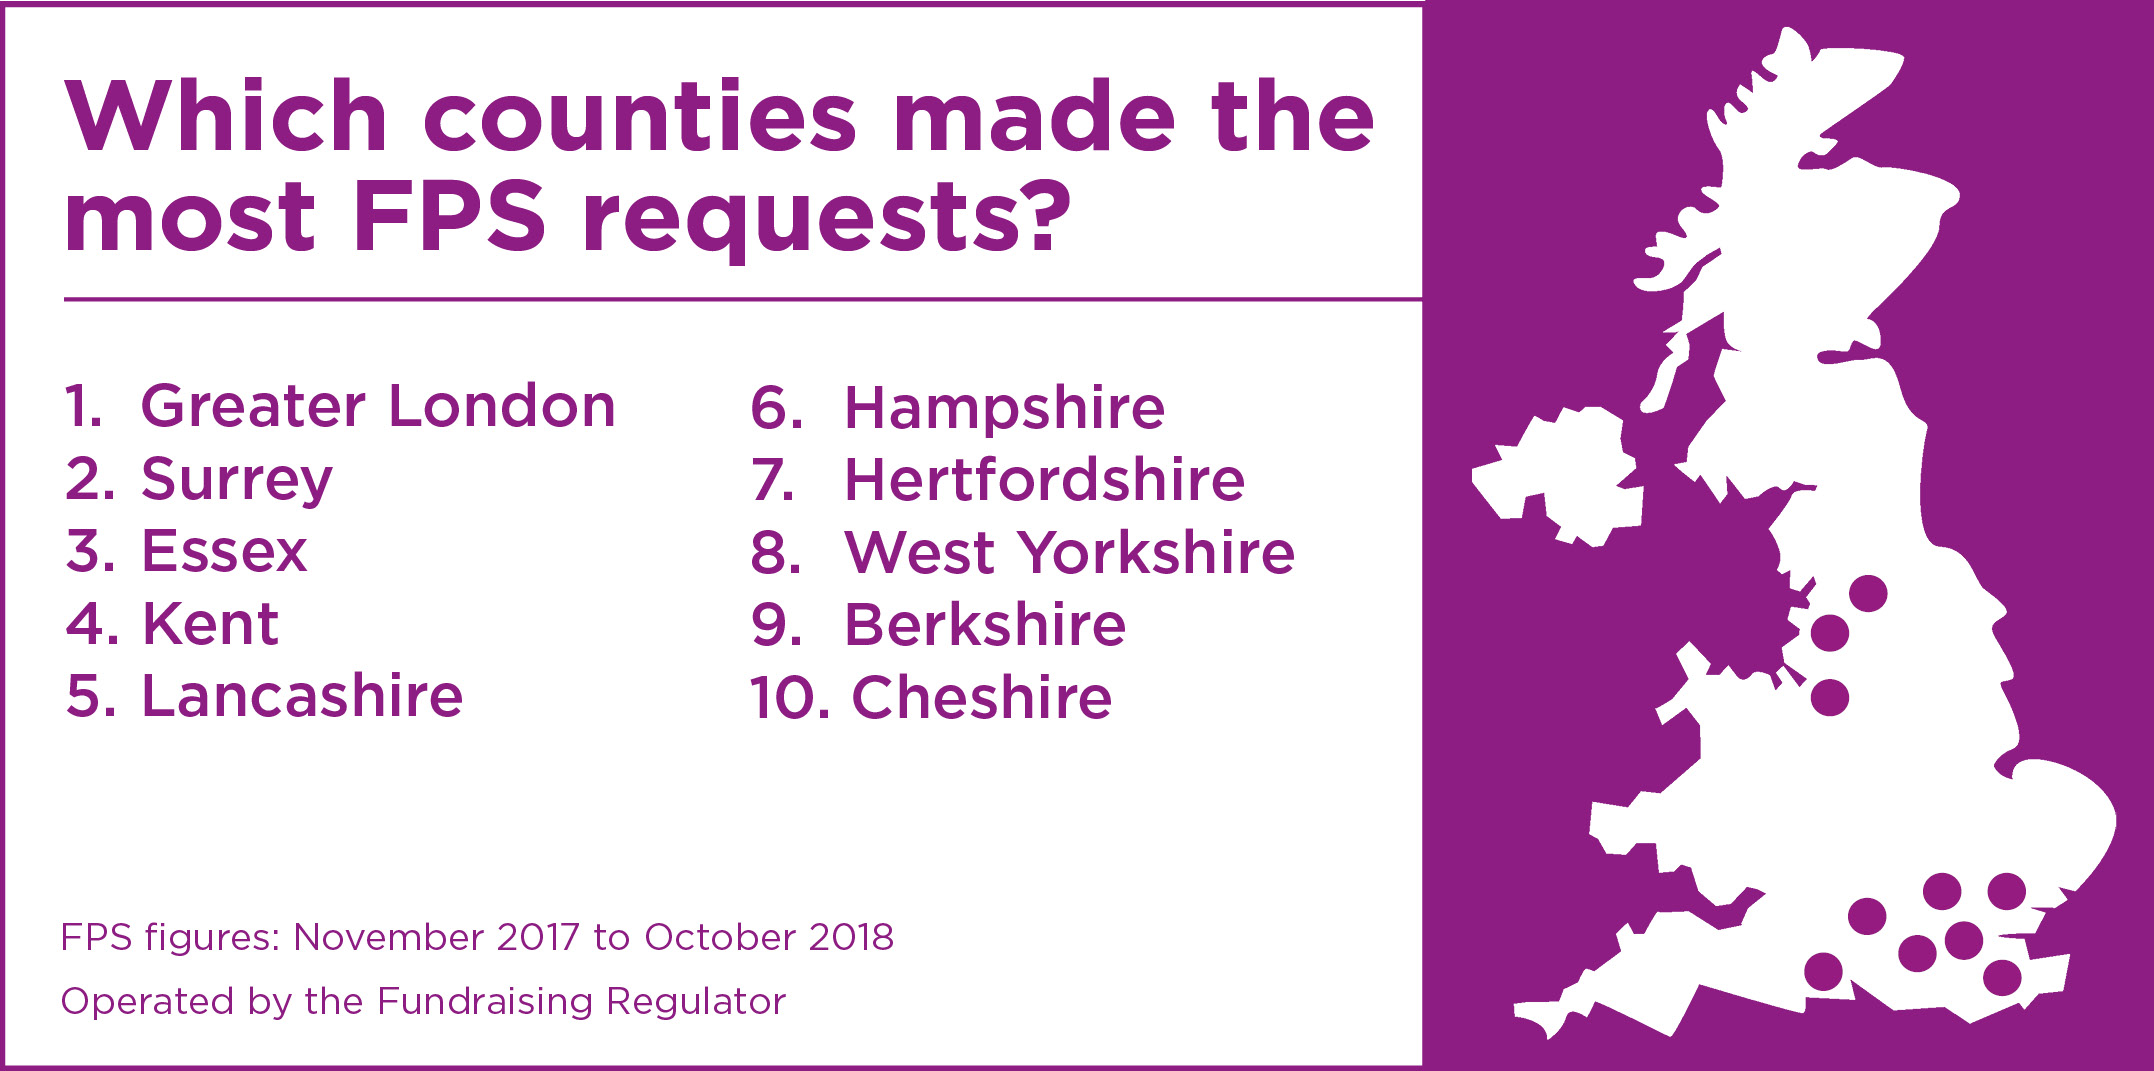 Which counties made the most FPS requests